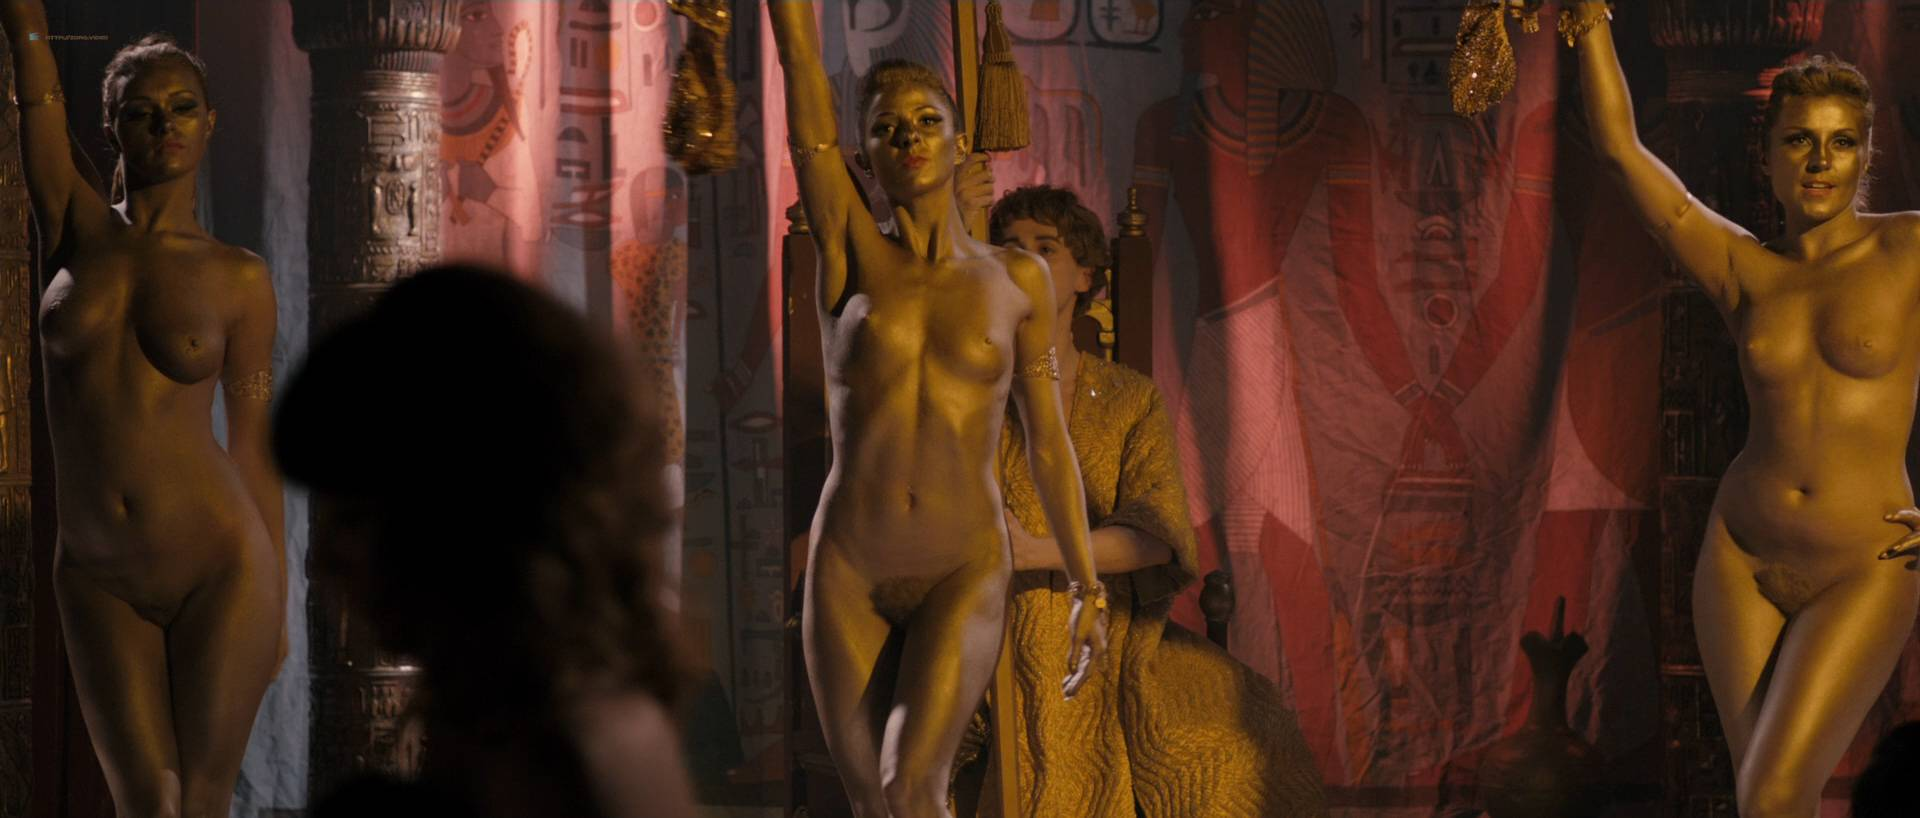 Anna Friel nude topless Tamsin Egerton nude various actress nude full frontal - The Look of Love (2013) HD 1080p (16)